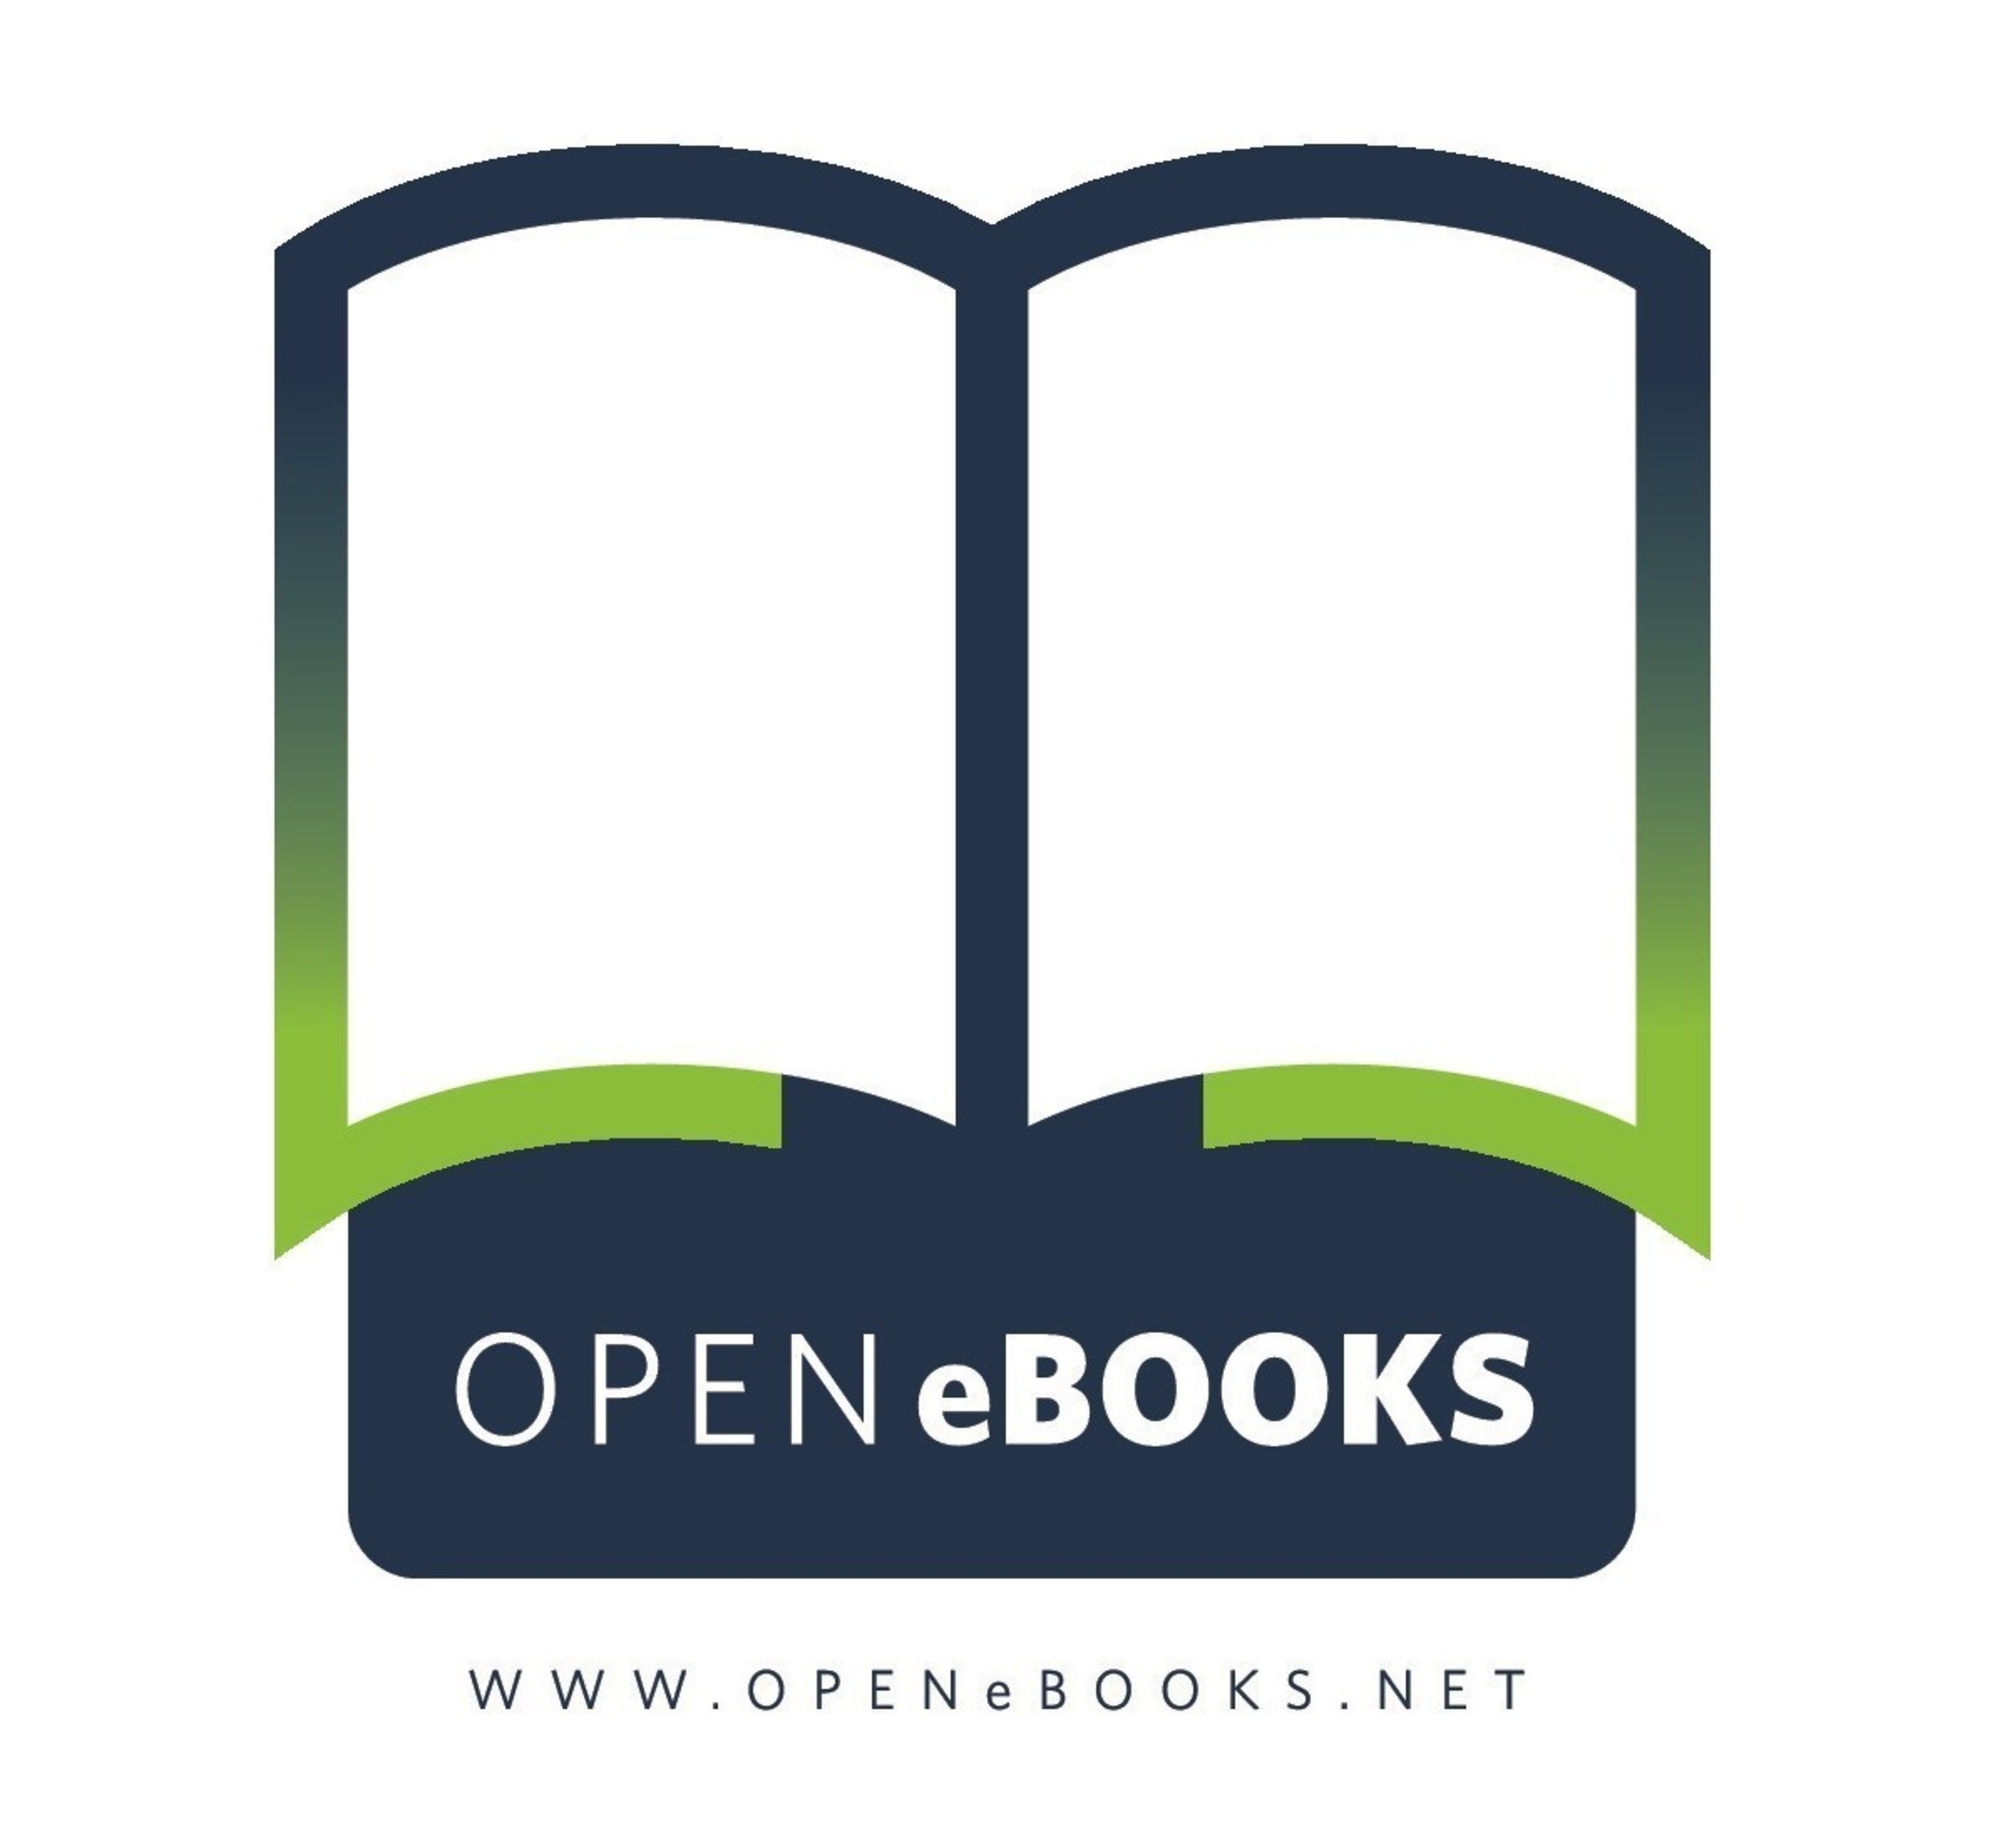 Open eBooks is a new initiative and e-reader app that will make thousands of popular, top-selling eBooks available to children in need for free.